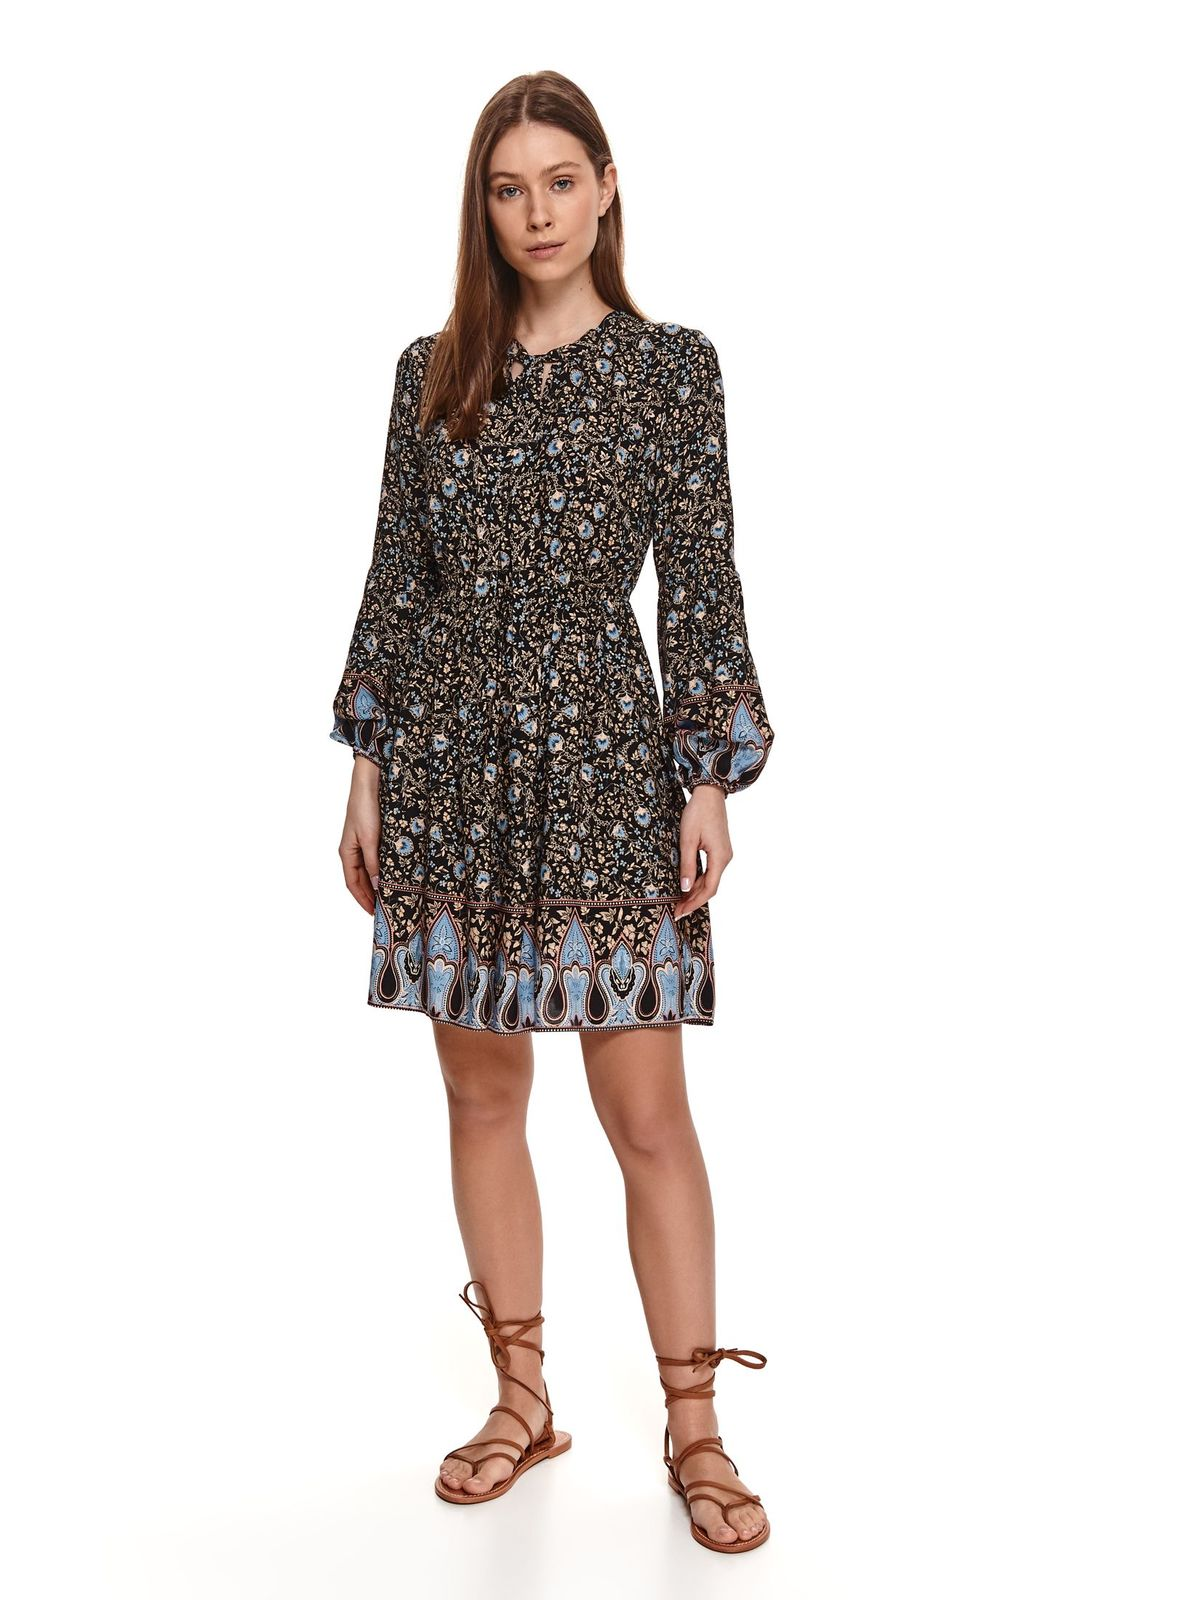 Black dress with floral print cloche with elastic waist elastic held sleeves